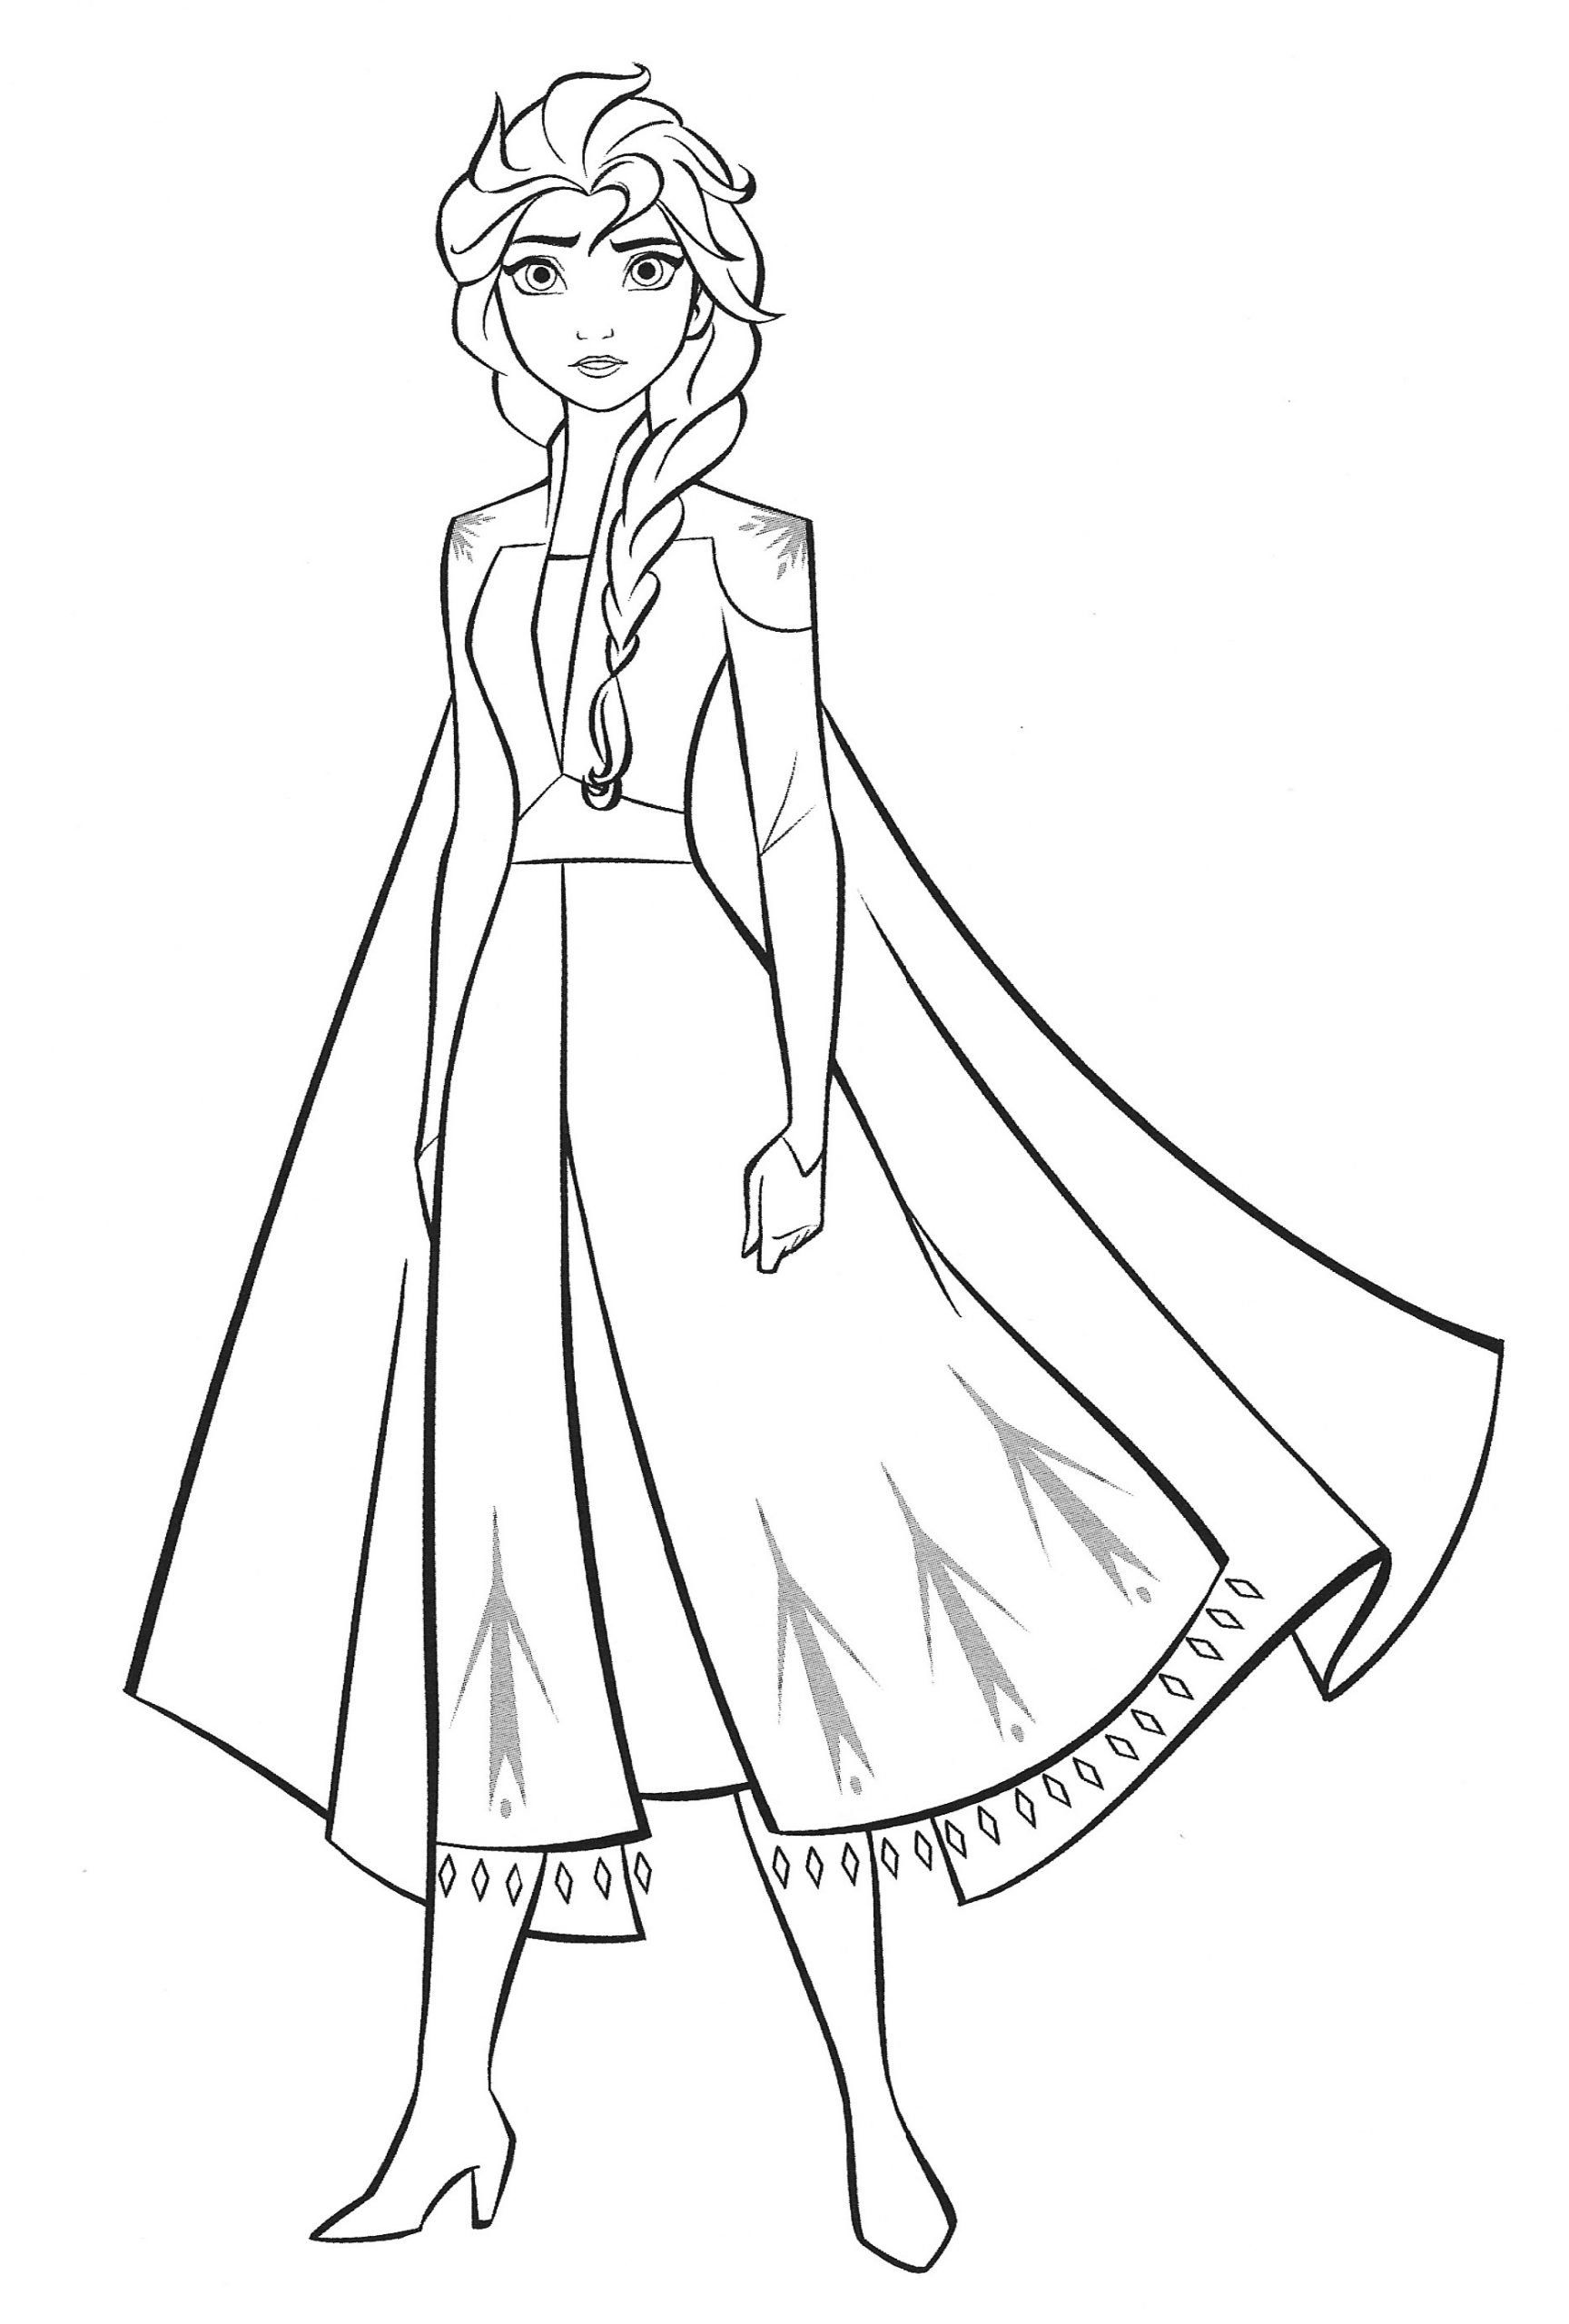 Anna Frozen Coloring Page New Frozen 2 Coloring Pages With Elsa Youloveit In 2020 Frozen Coloring Frozen Coloring Pages Disney Princess Coloring Pages